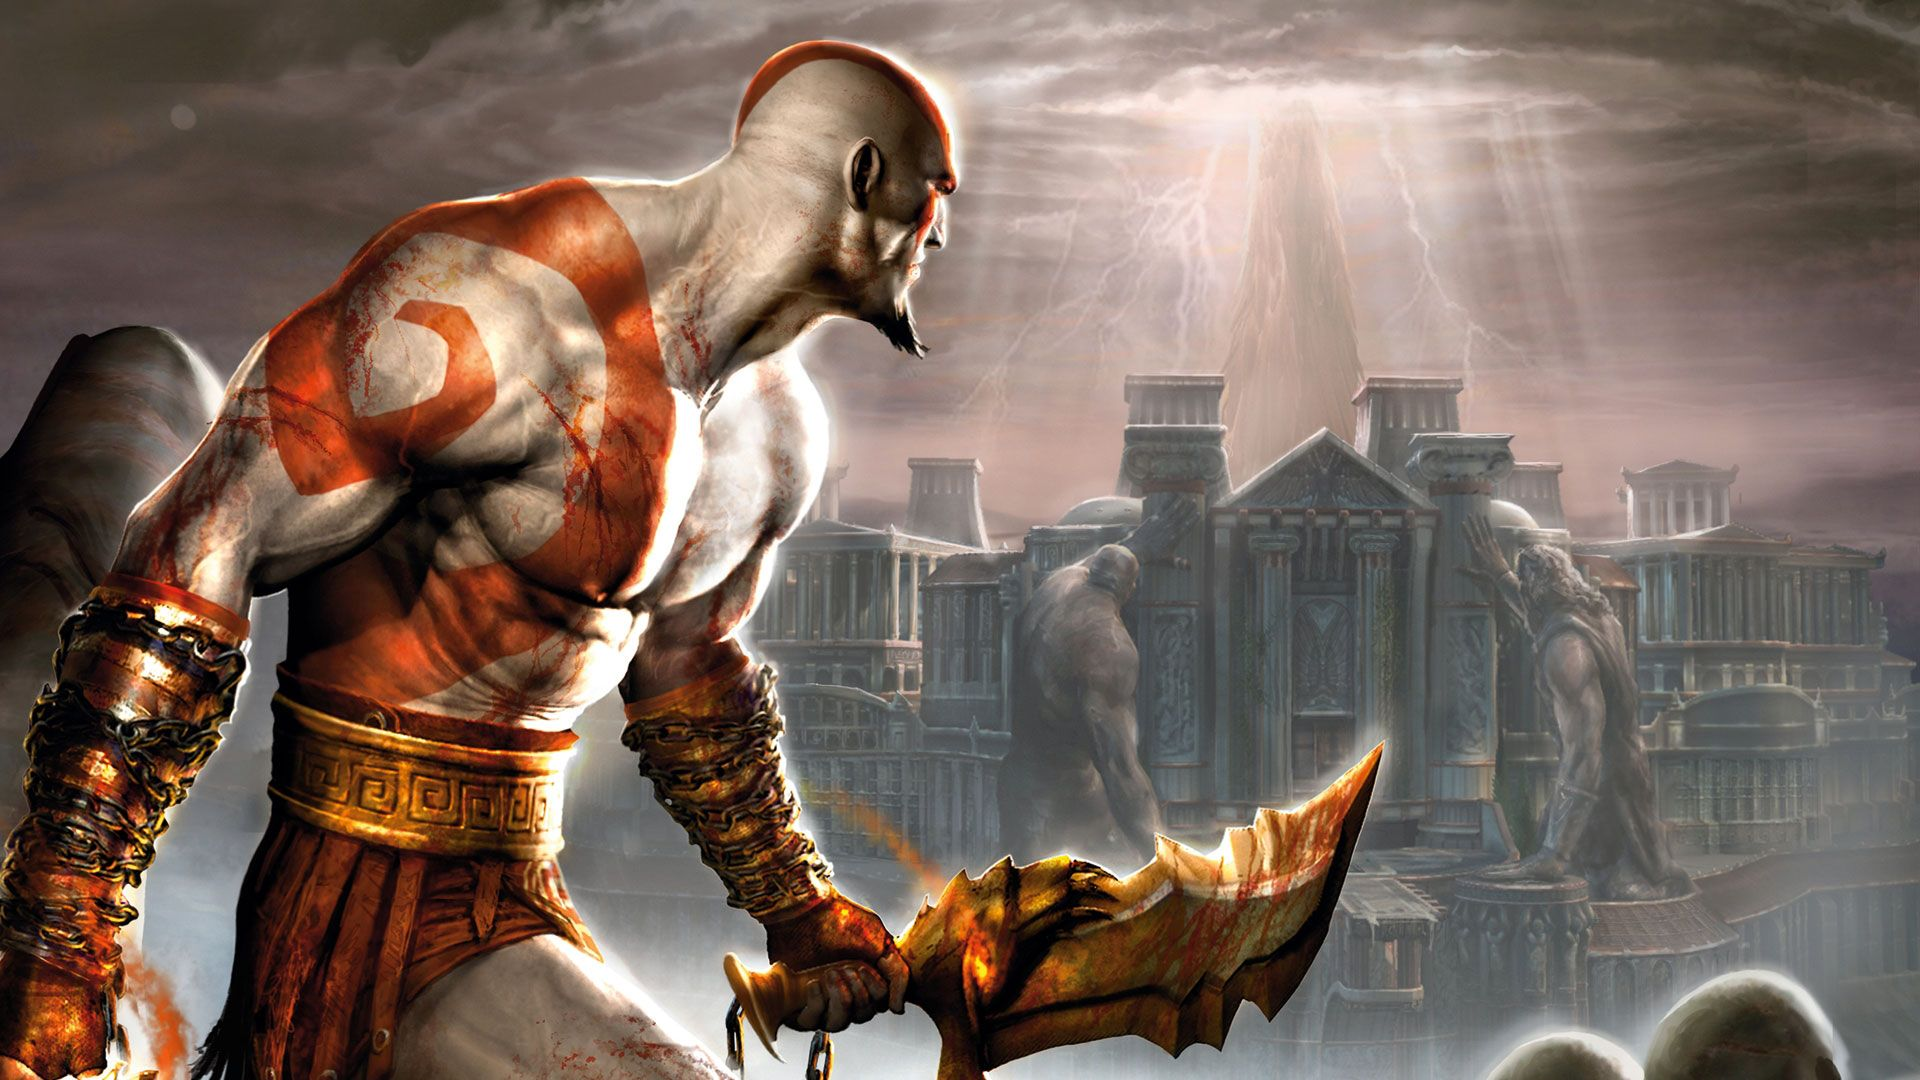 Free Download Animated Wallpapers For Windows 7 Ultimate God Of War Hd Game Wallpapers 1080p L Pinterest